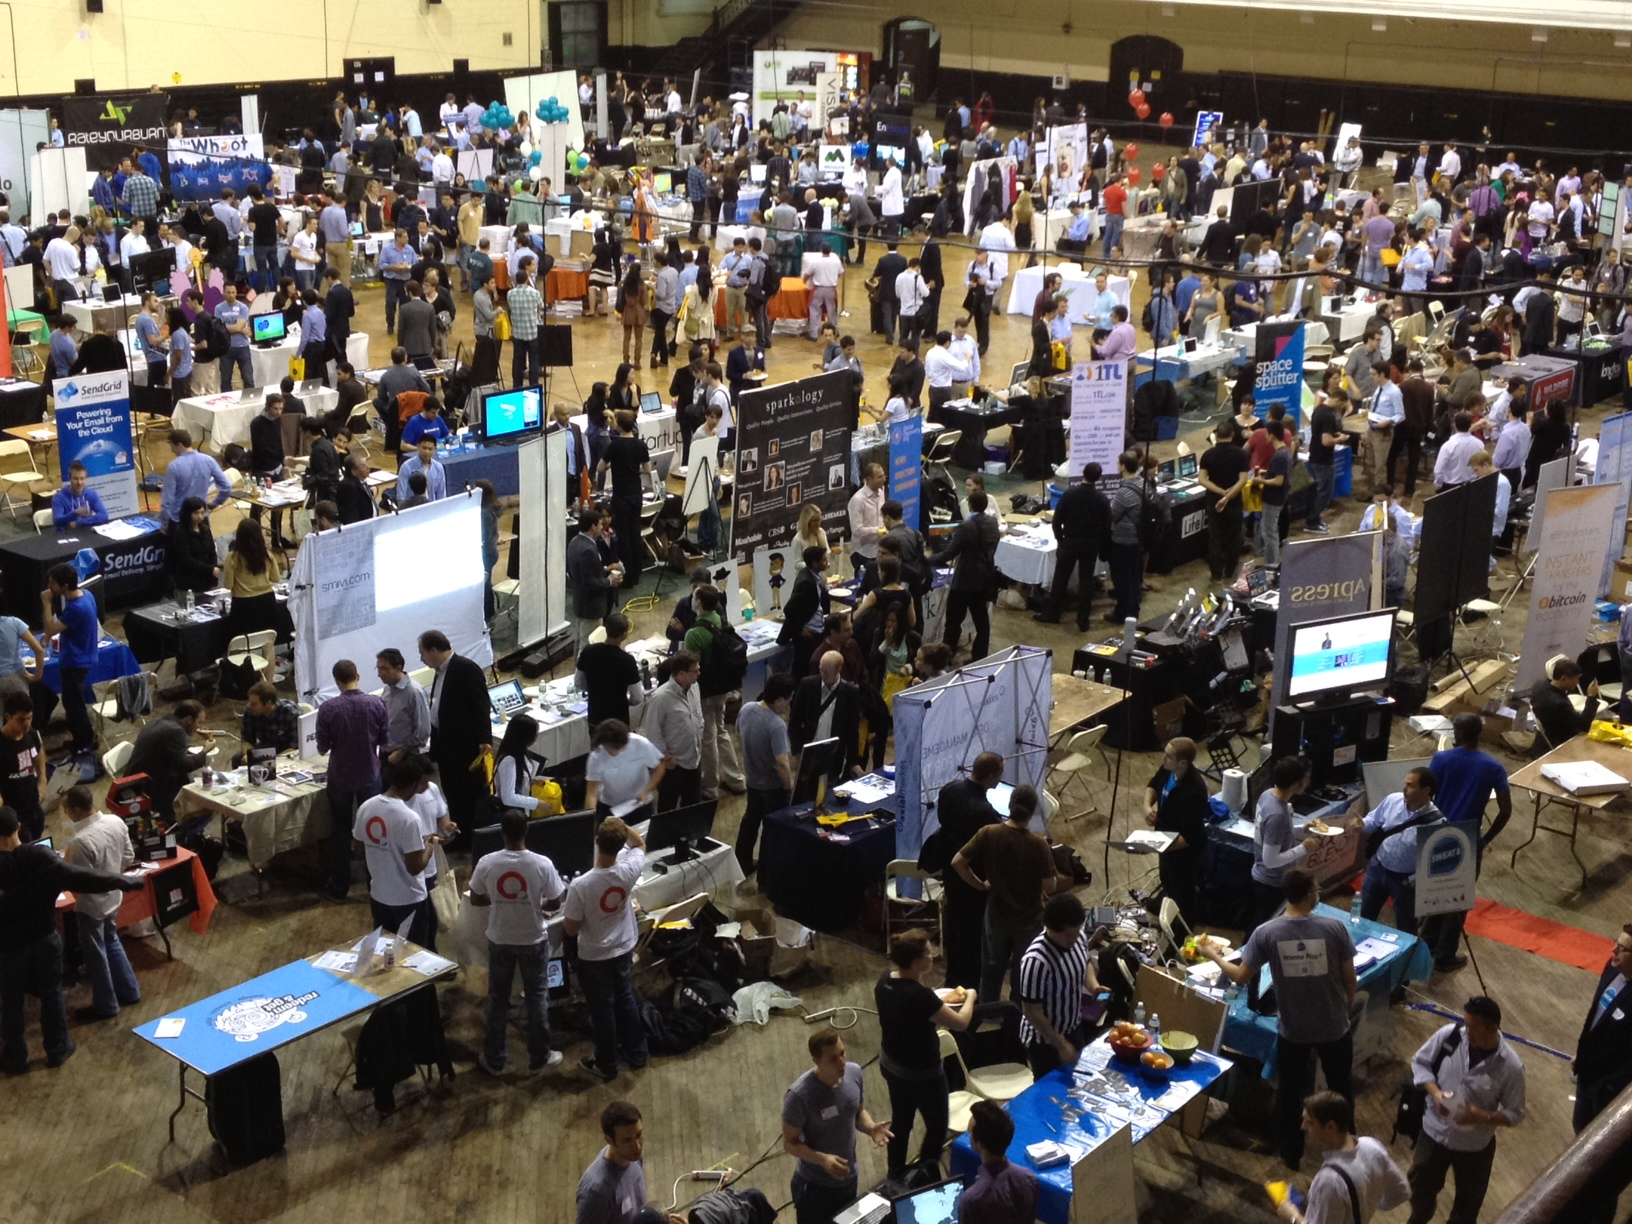 NY Tech Day 2012. Image courtesy of the Forbe's article of 2012 by Kevin Ready @keready